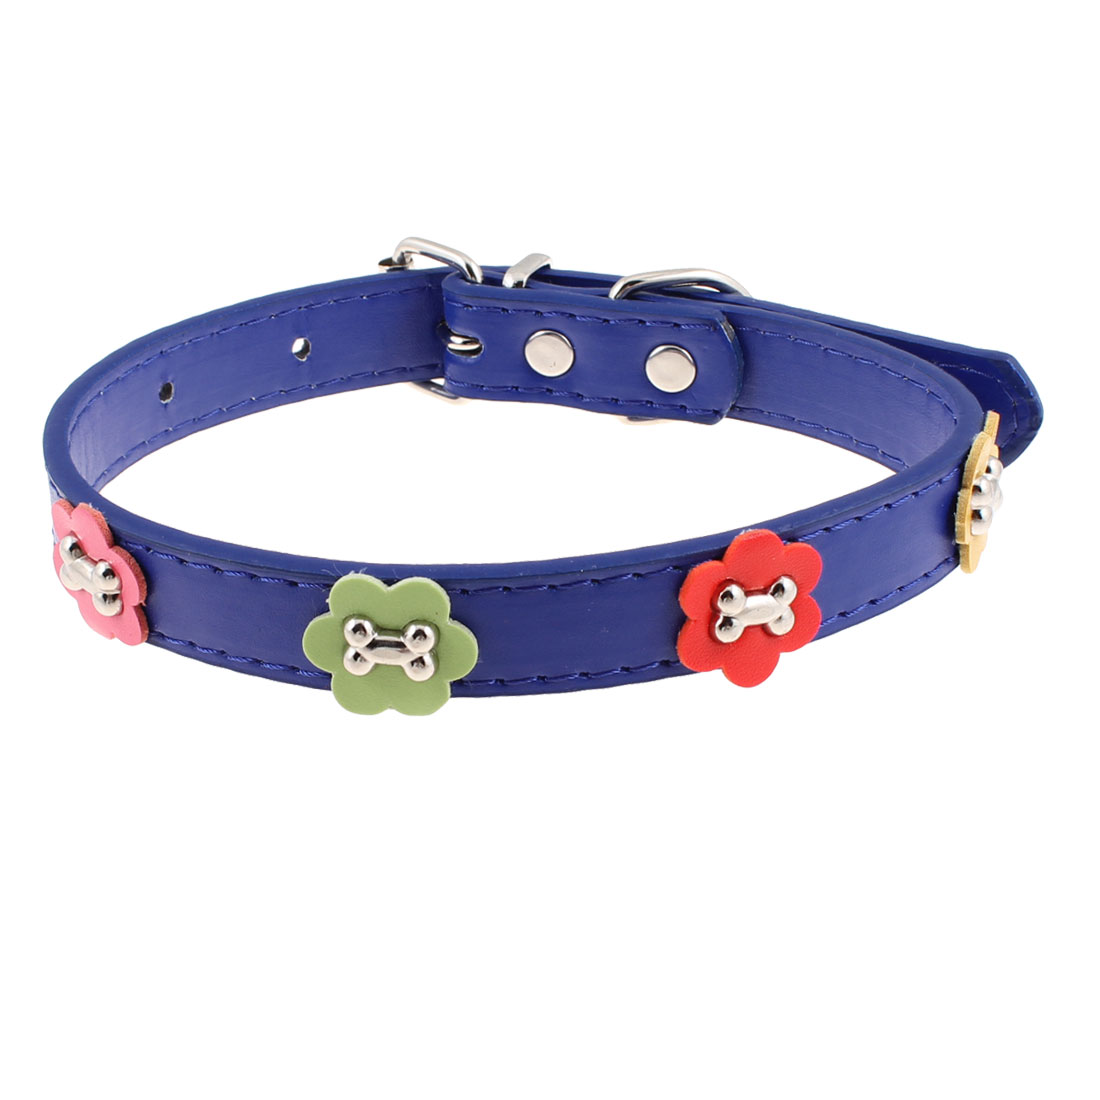 Single Prong Buckle Bone Decor Blue Neck Pet Dog Collar Belt Size M